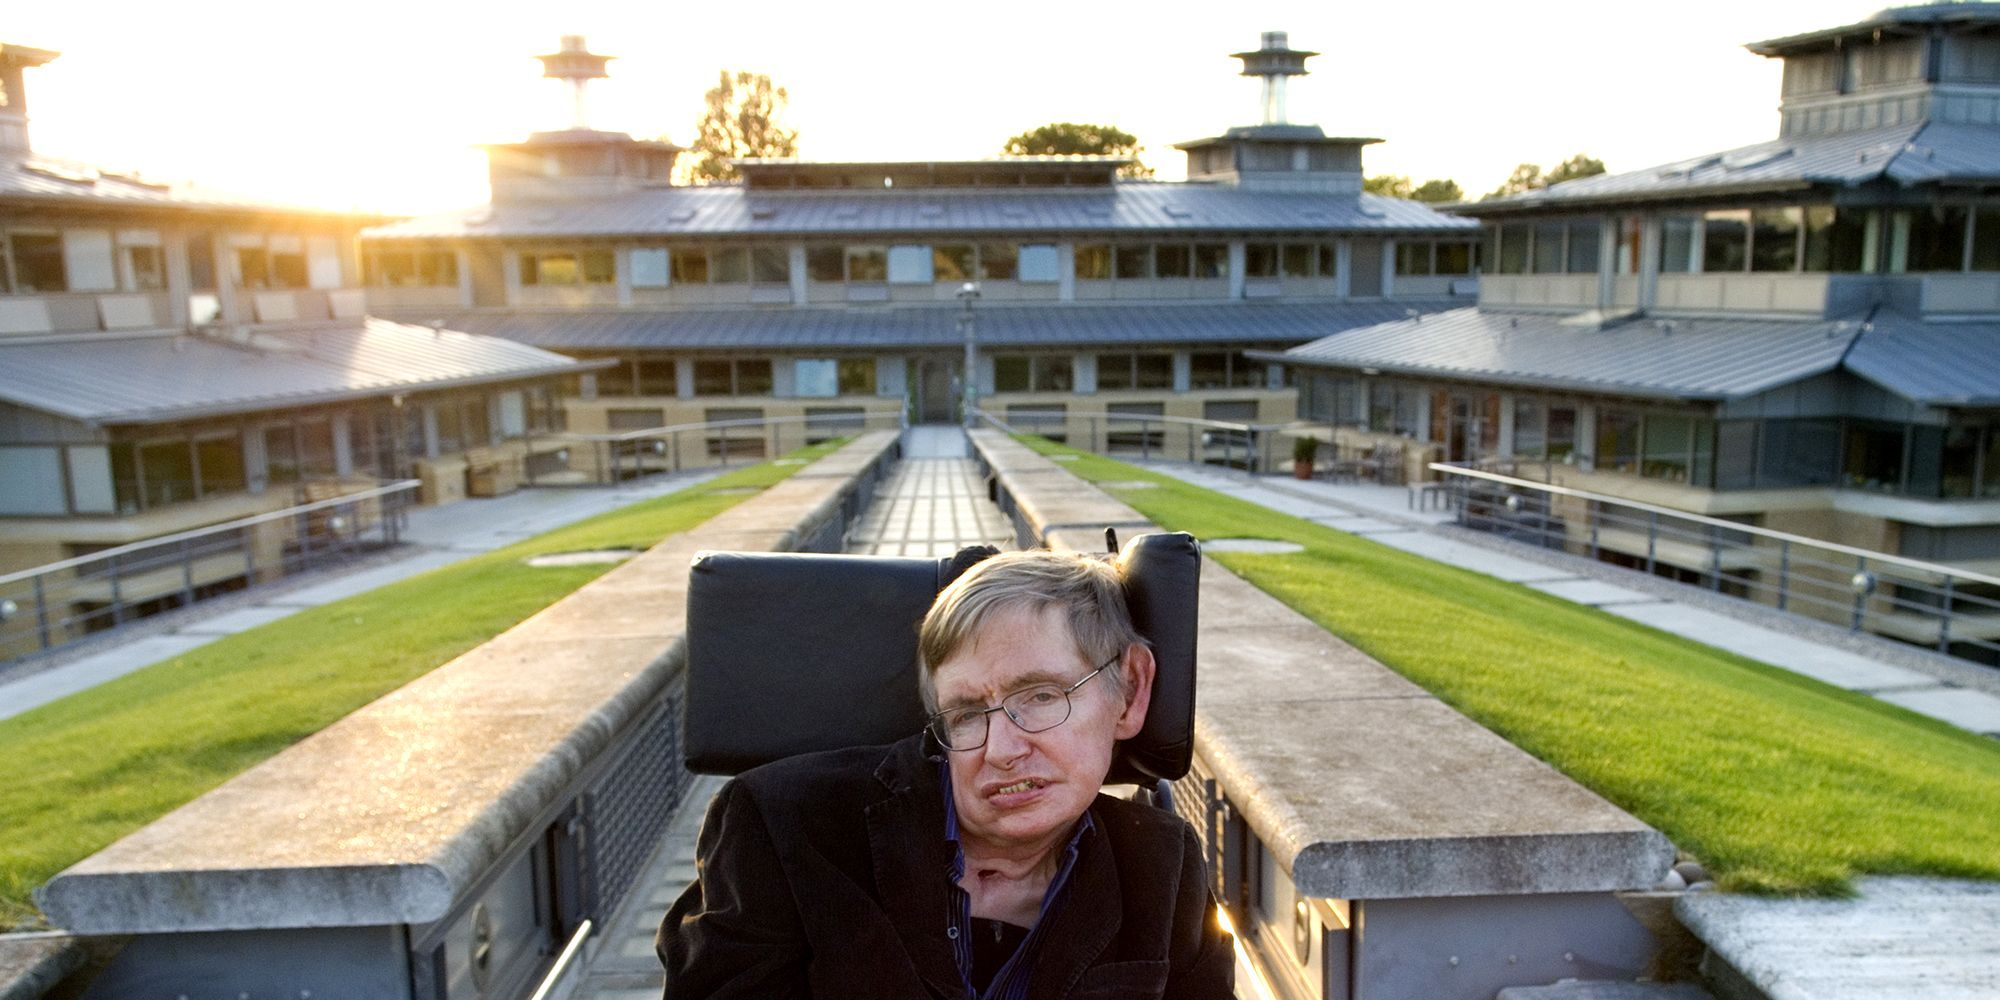 Professor Stephen Hawking, British theoretical physicist